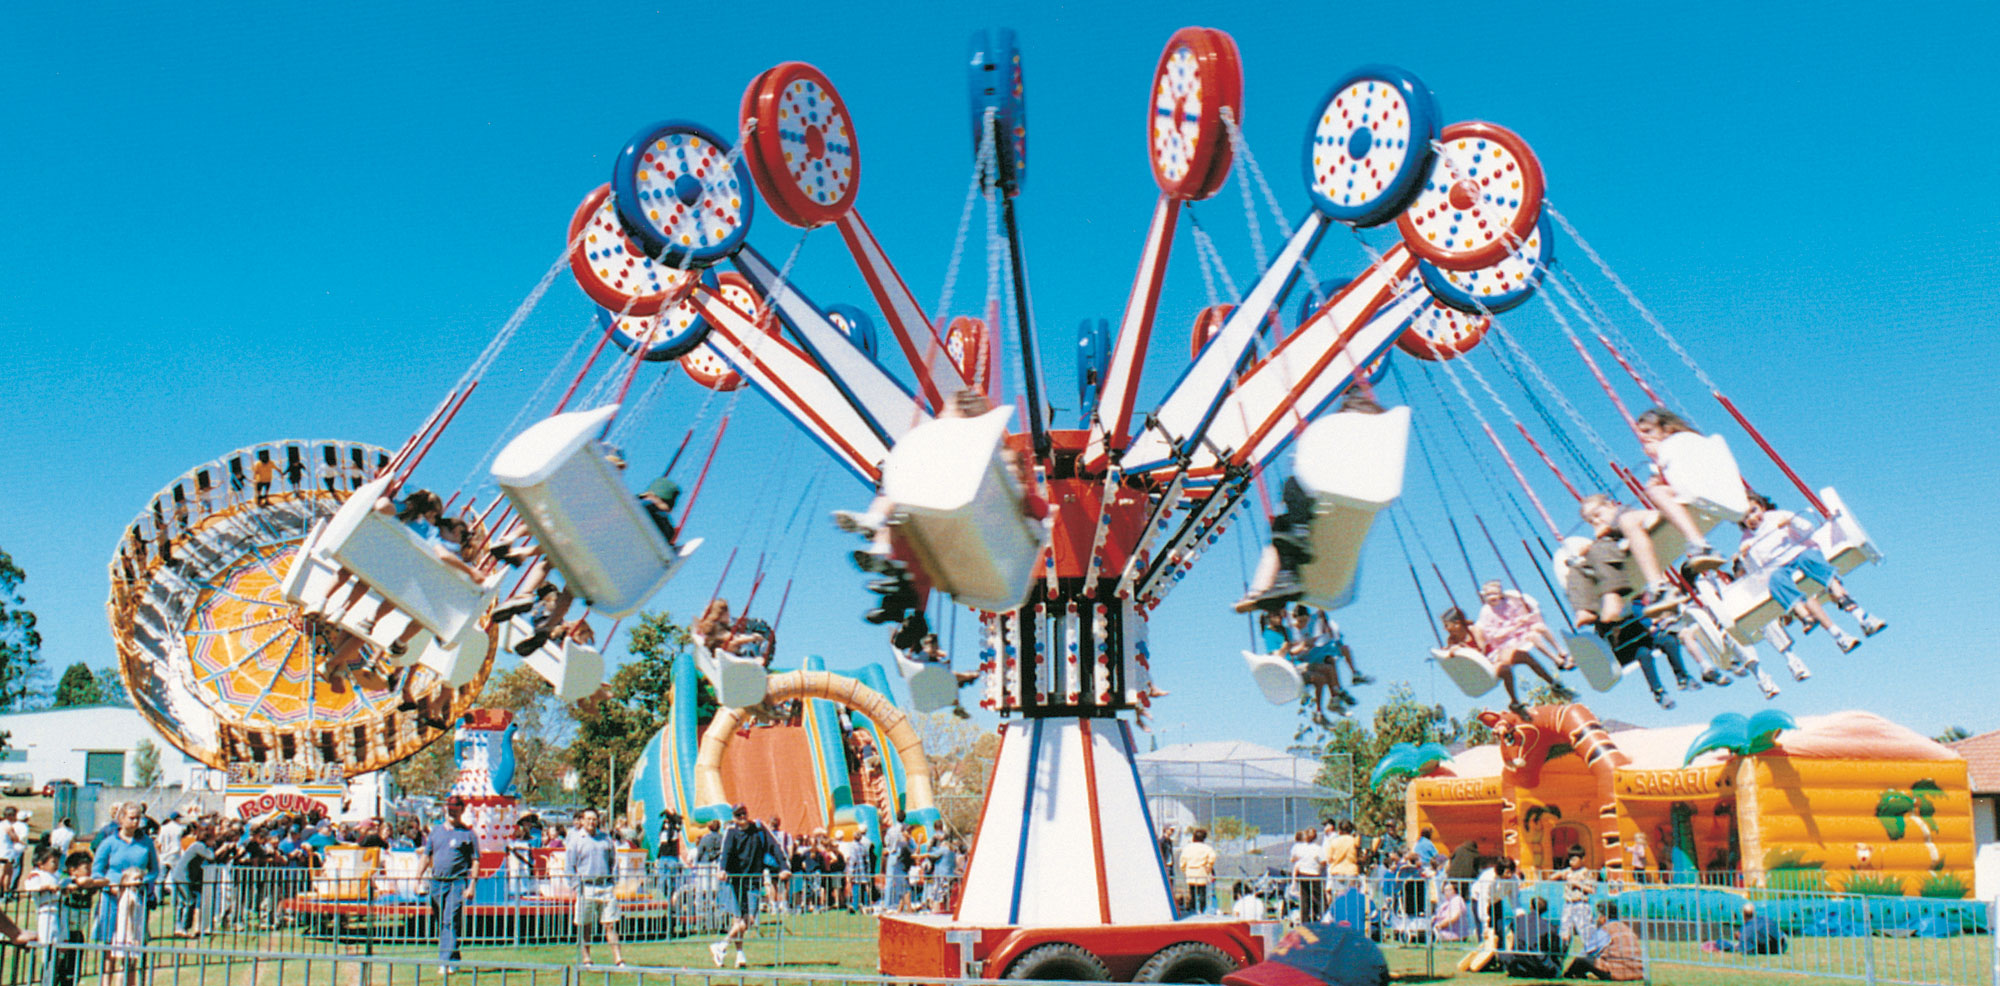 Amusement Rides and Inflatables